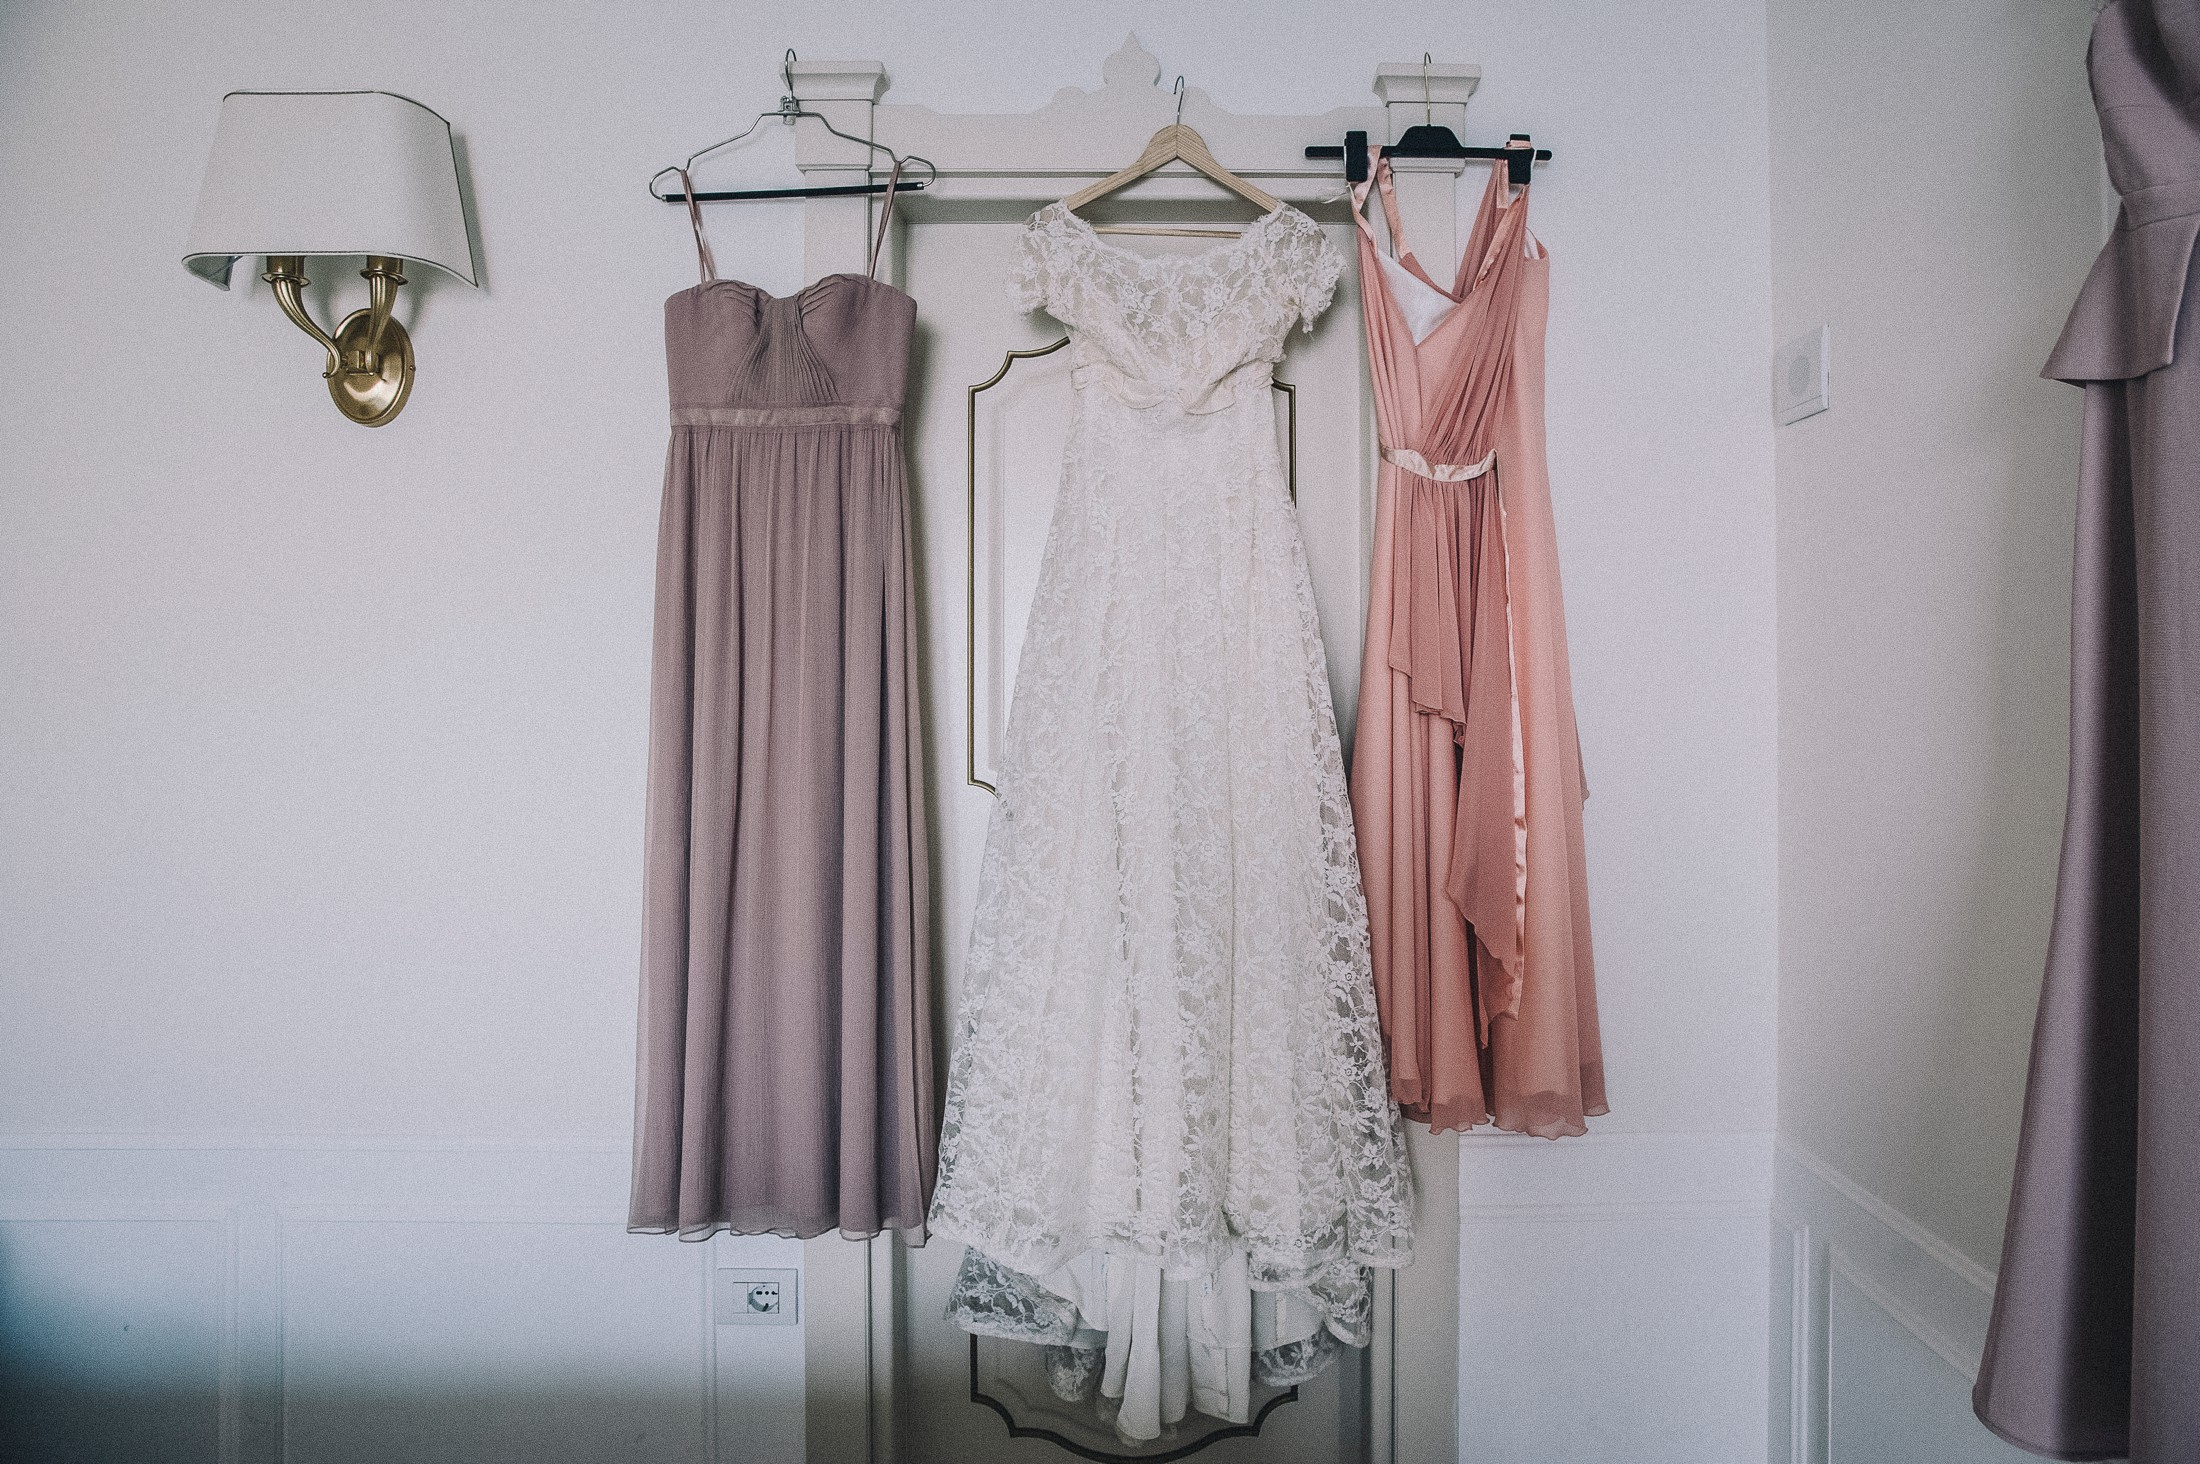 bride's wedding dress and bridesmaids ones